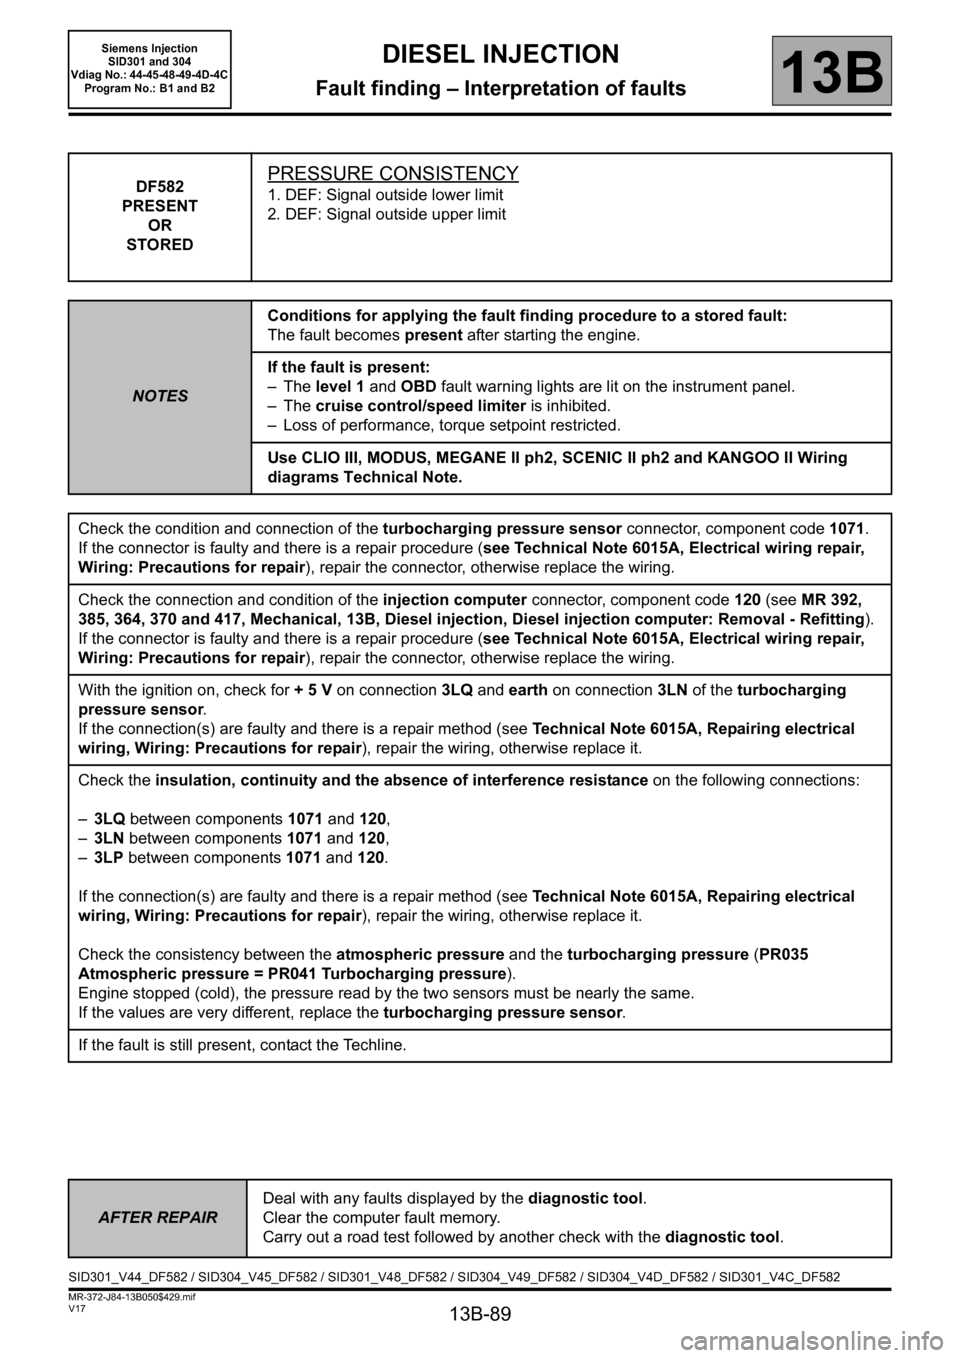 RENAULT SCENIC 2011 J95 / 3.G Engine And Peripherals Siemens Injection Workshop Manual, Page 89